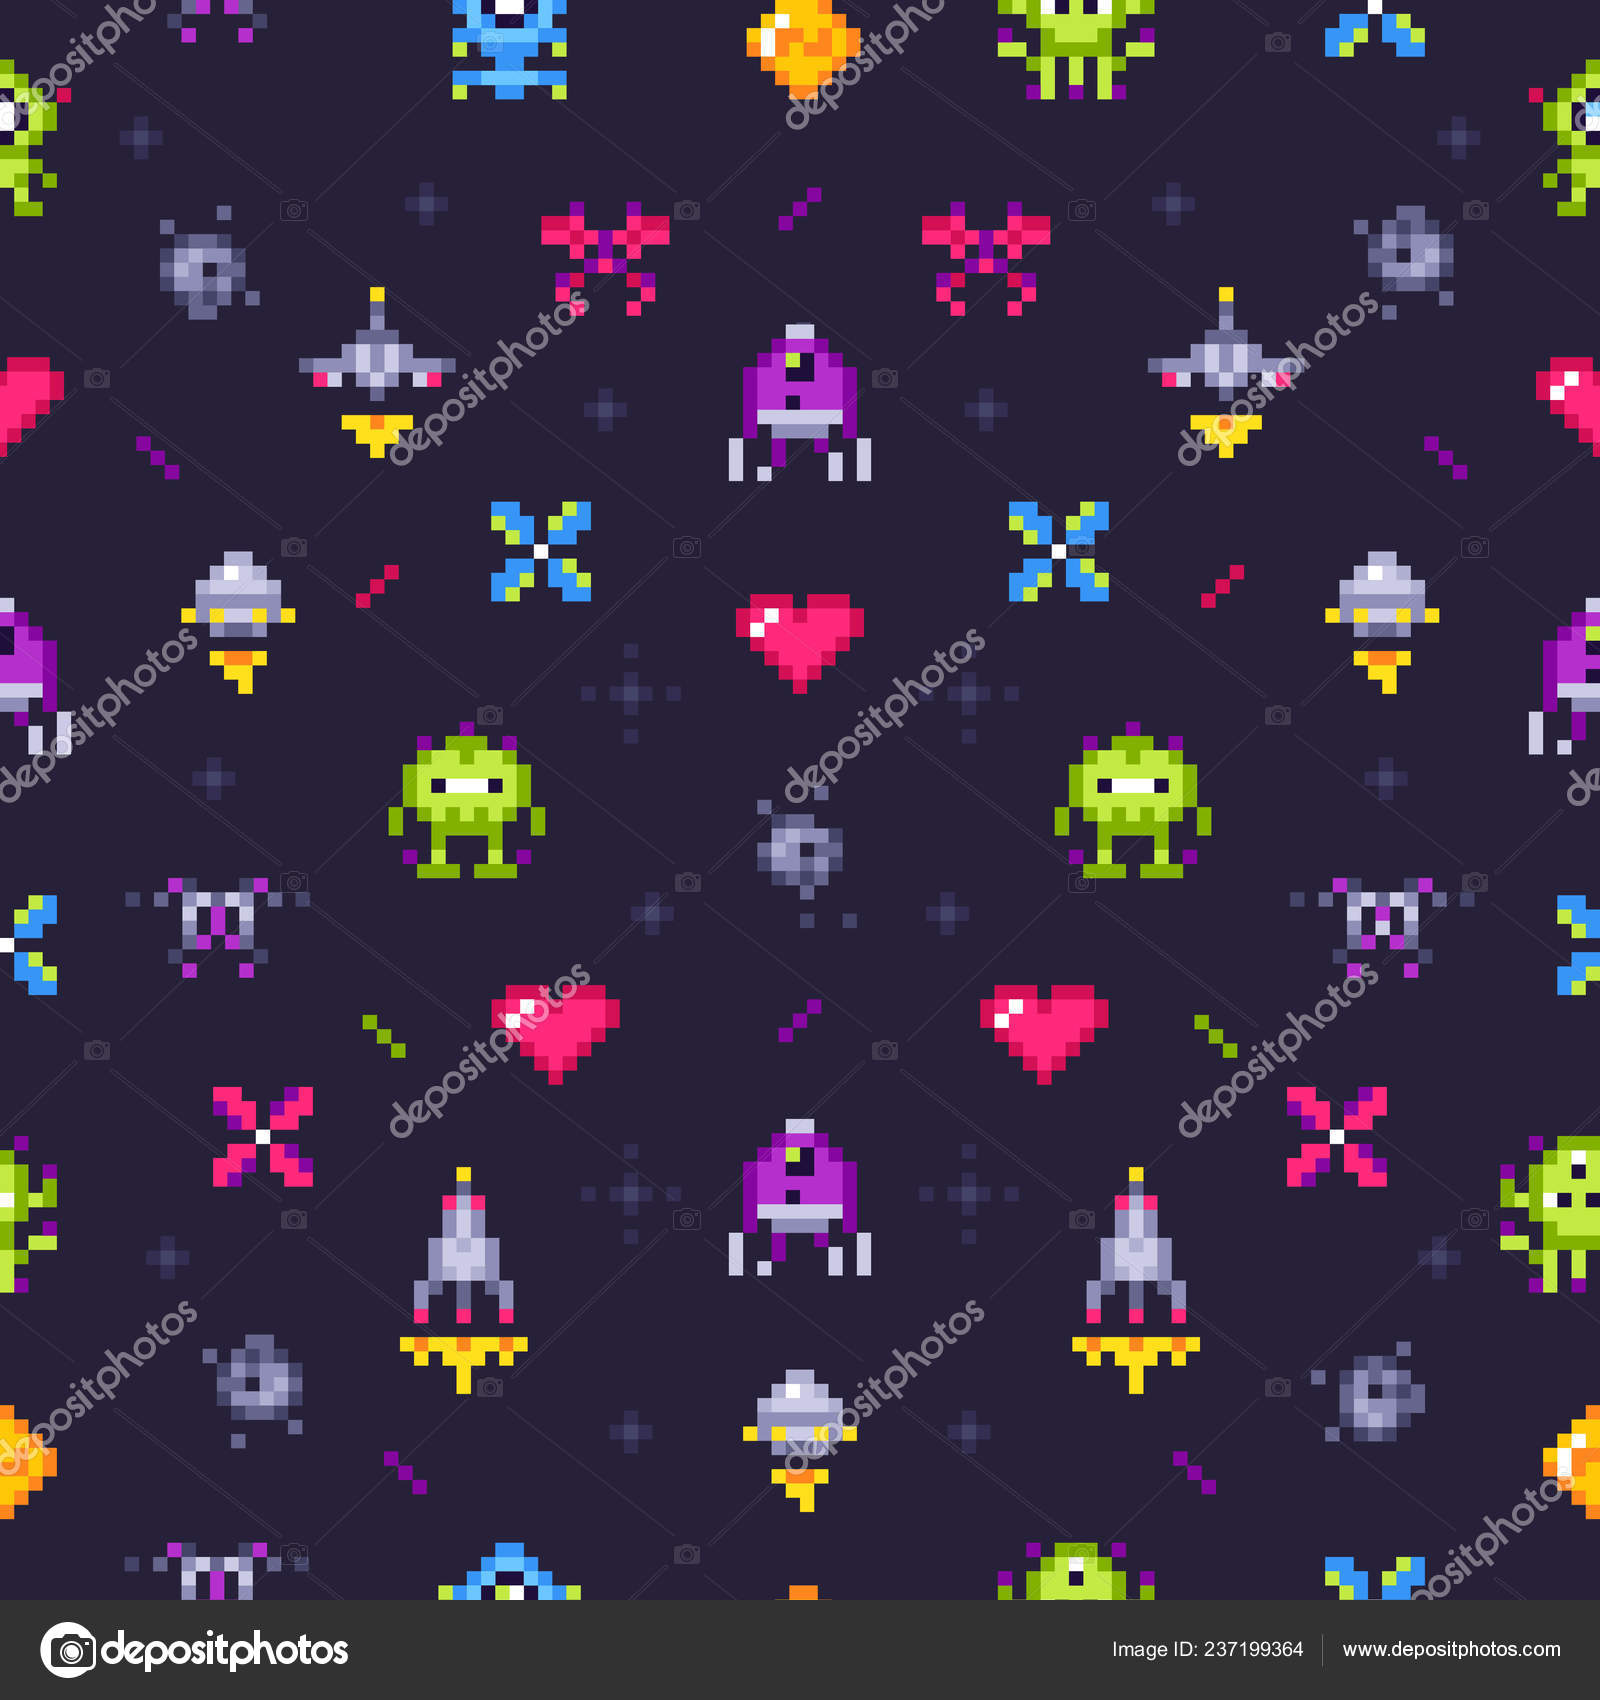 Old Games Seamless Pattern Retro Gaming Pixels Video Game And